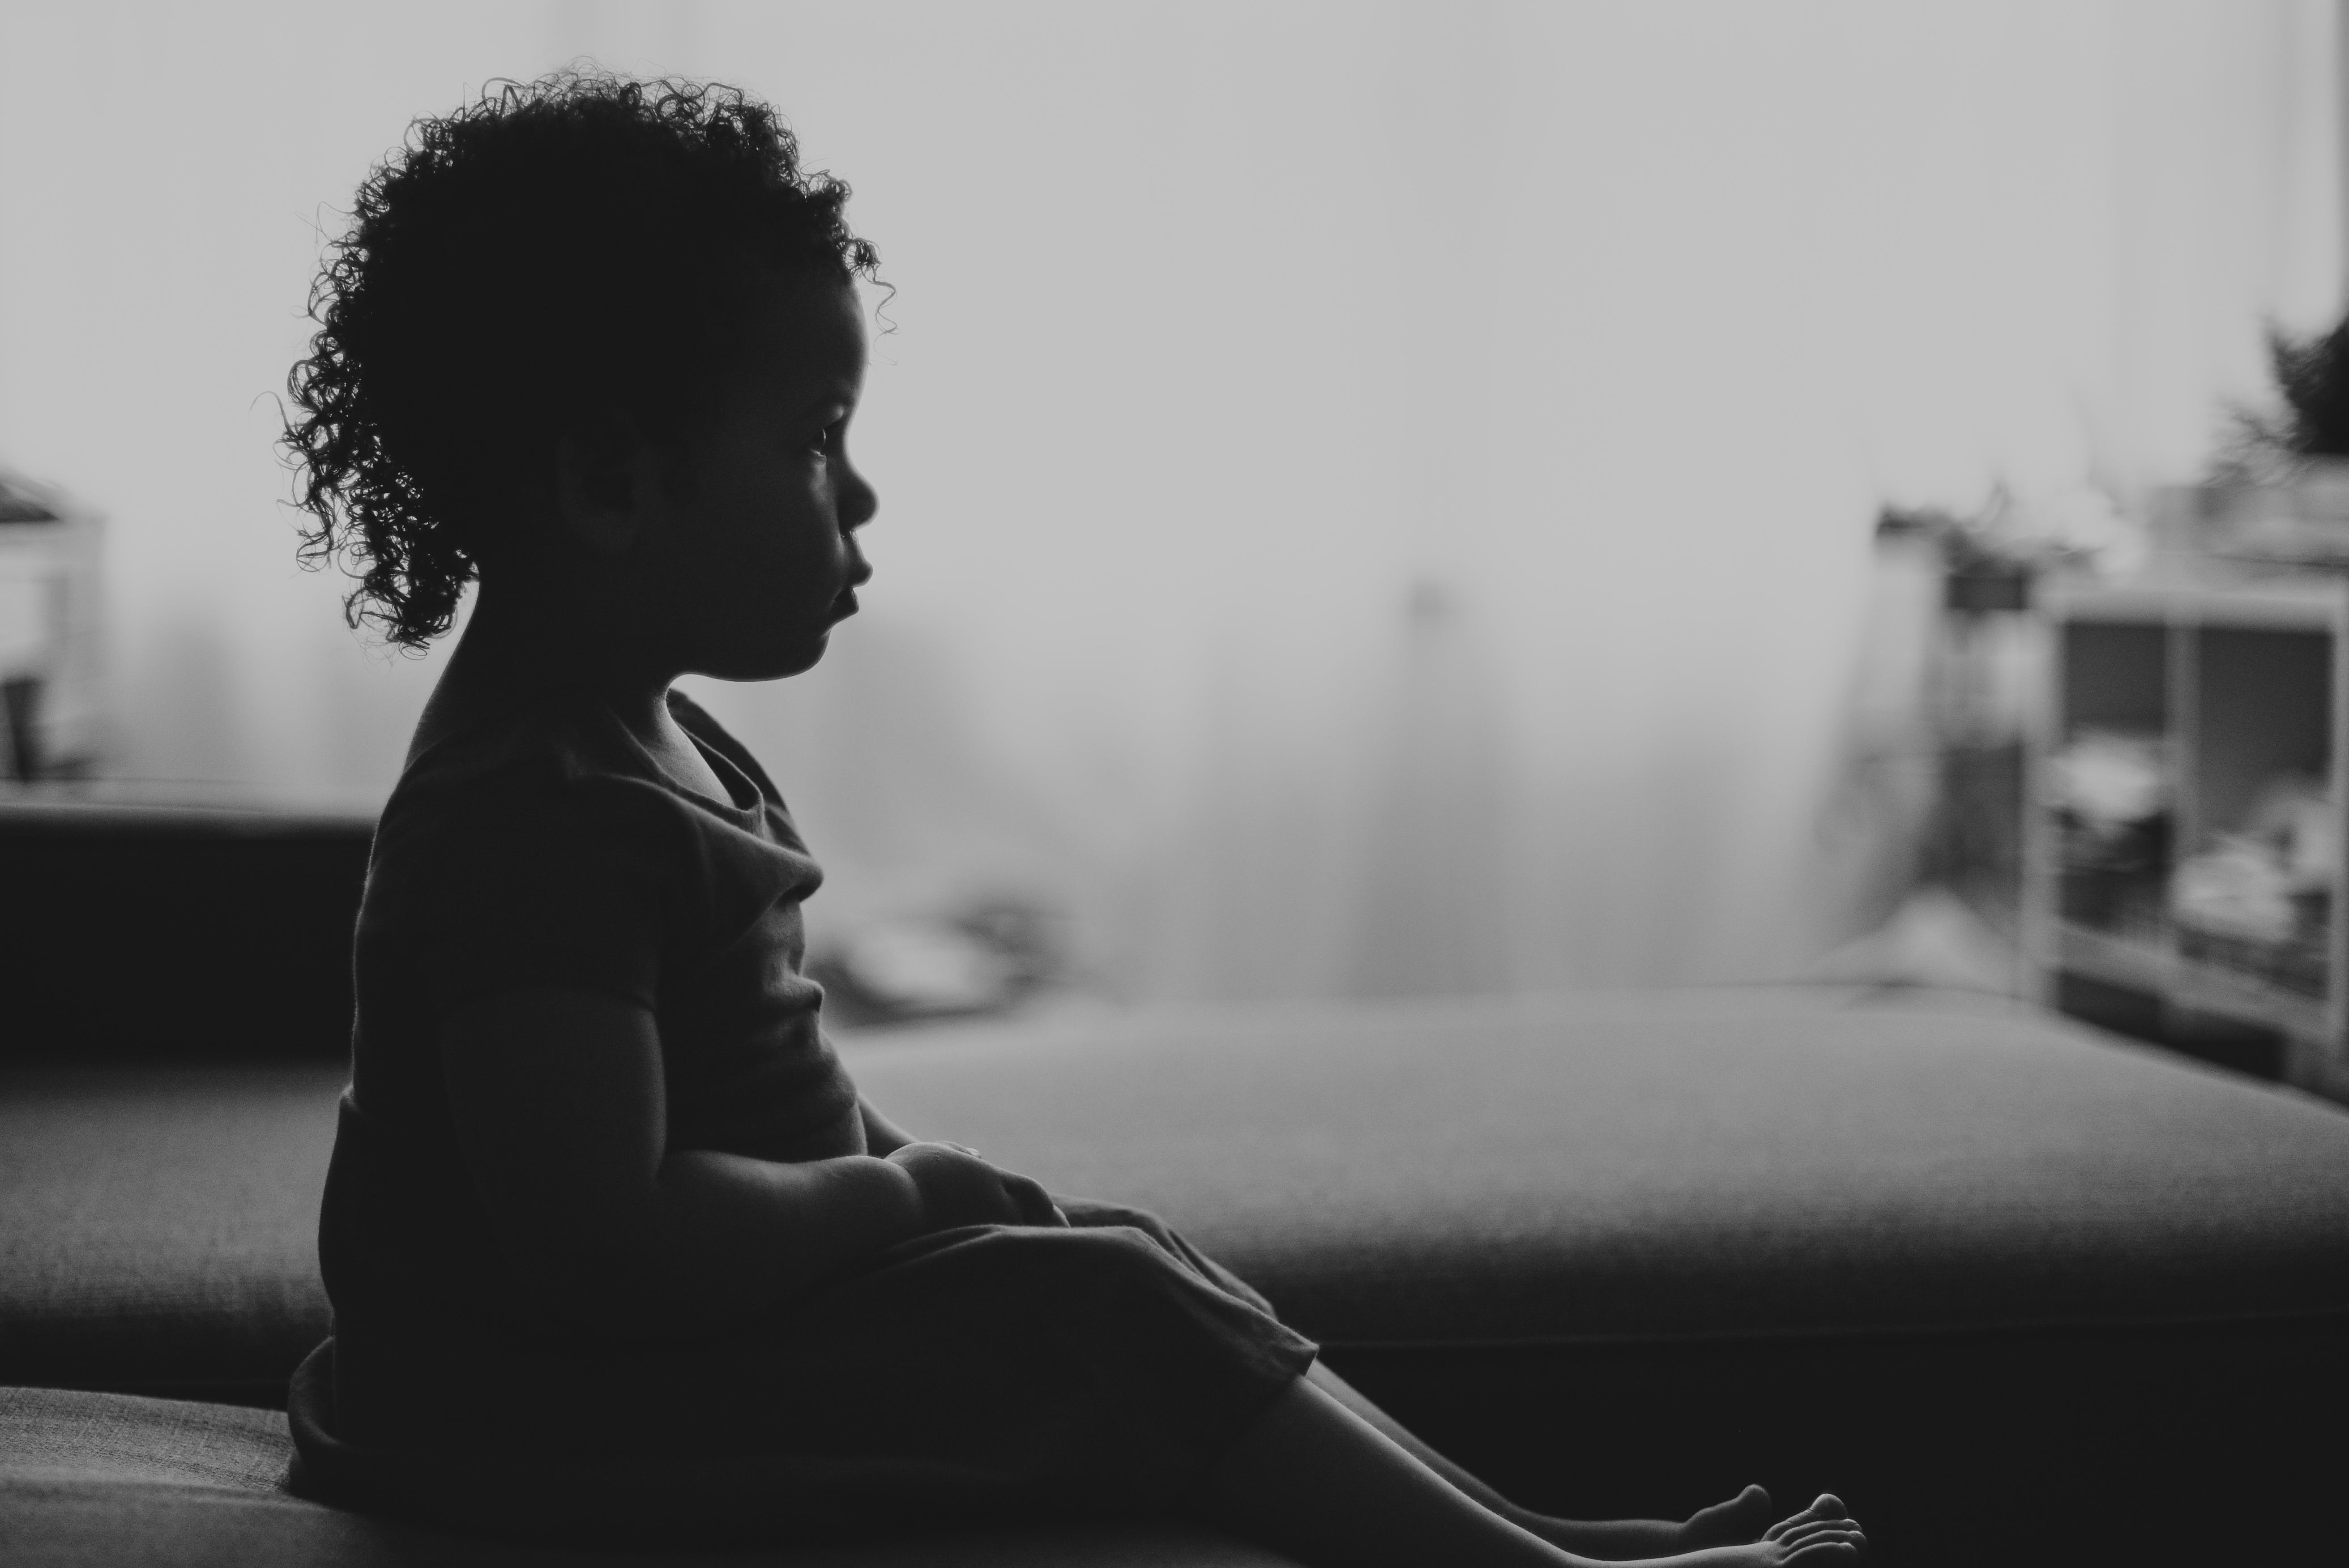 Silhouette Of Girl Sitting